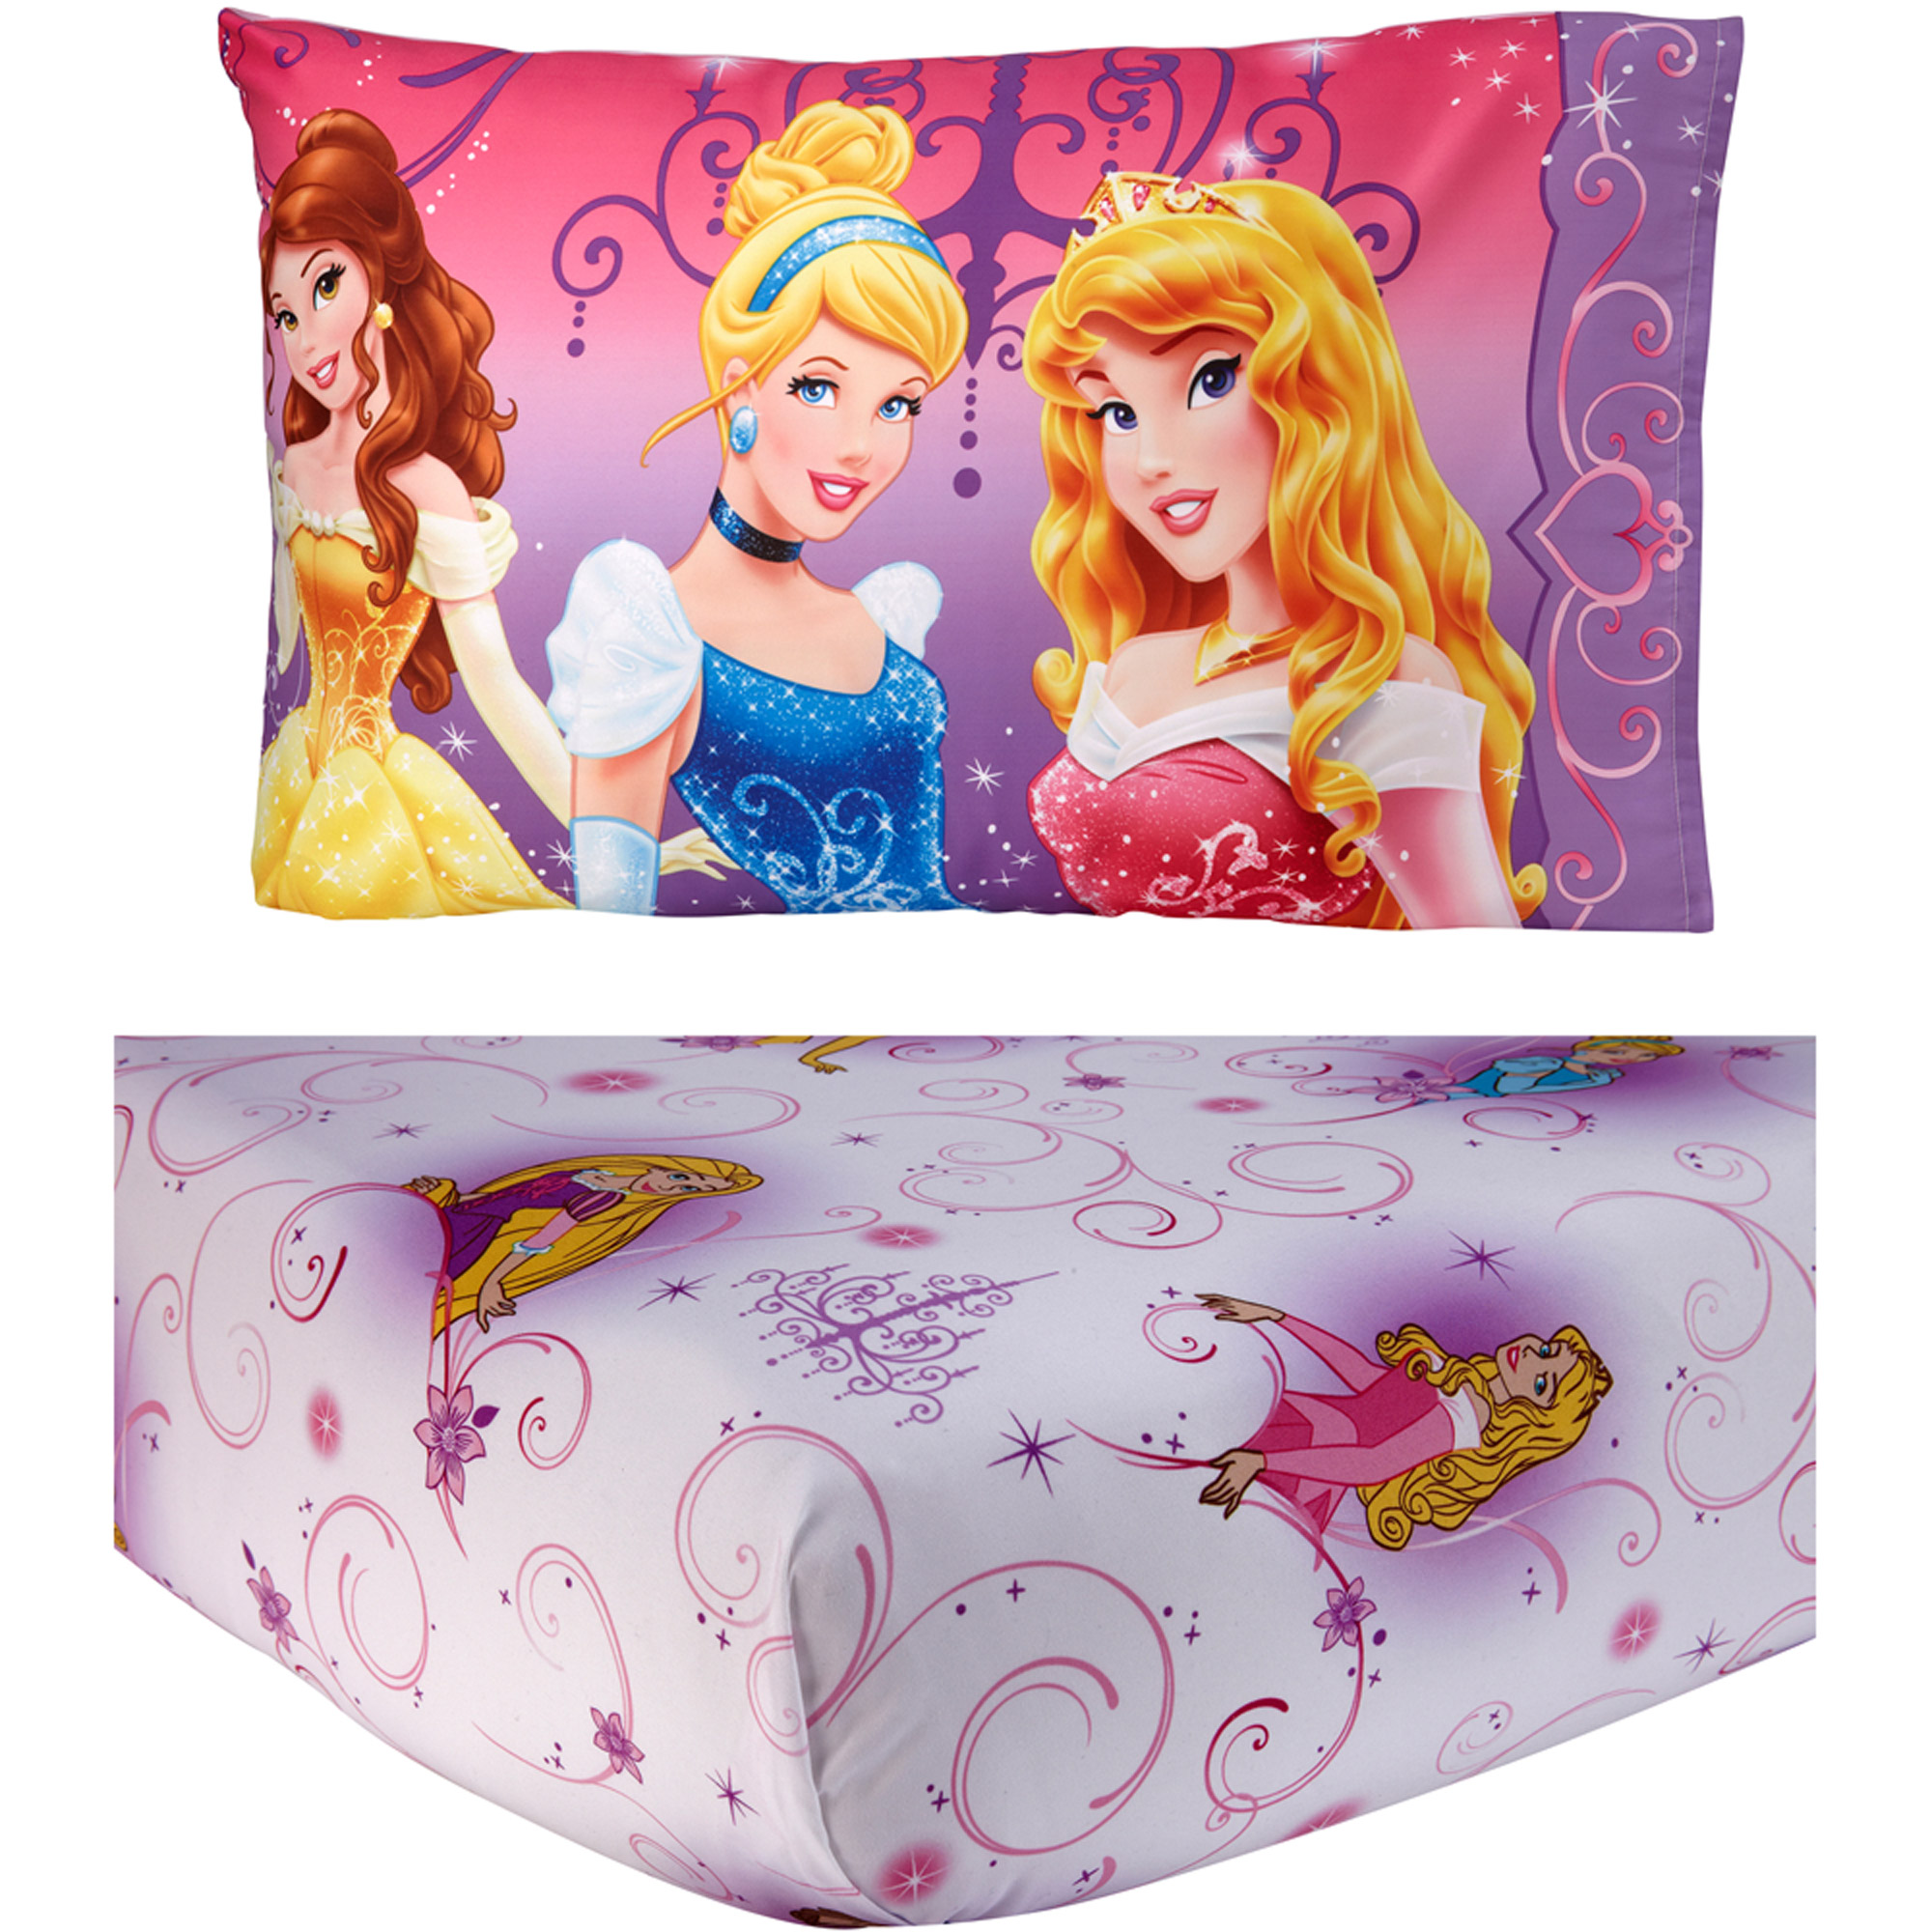 2pc Disney Princess at Heart Toddler Fitted Sheet and Pillowcase Set